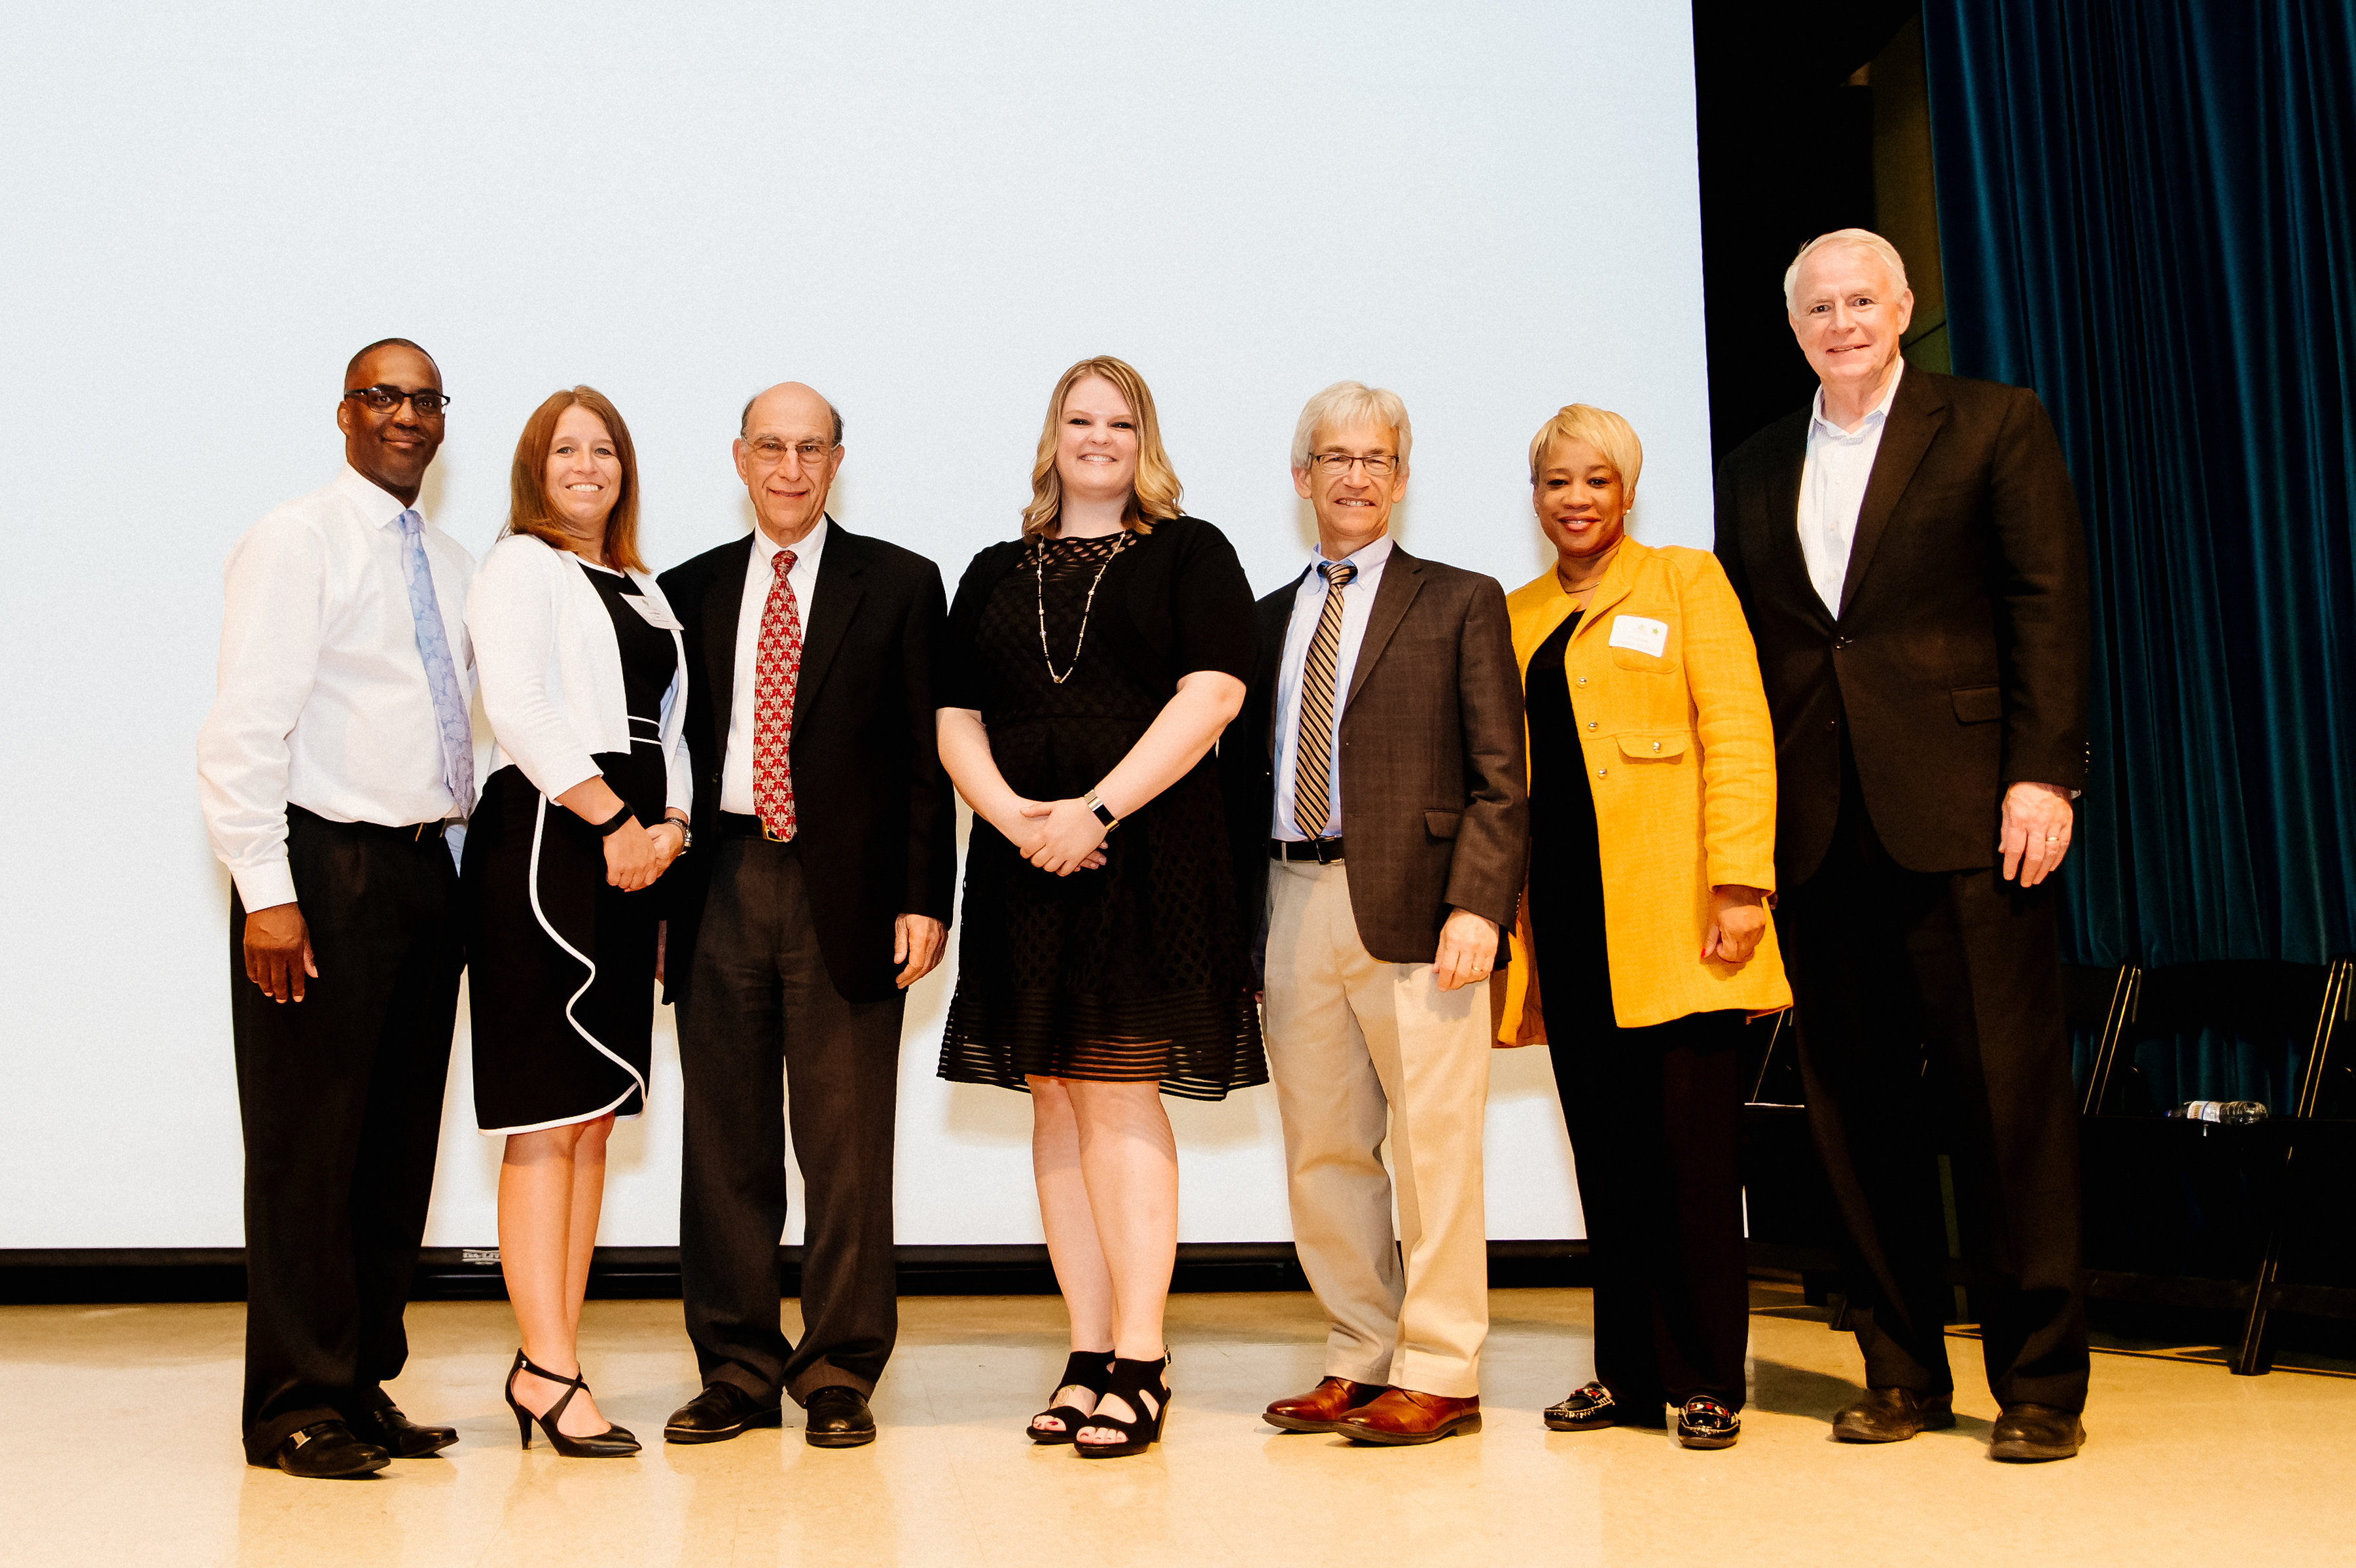 Community Advocates Public Policy Institute 10th Anniversary Celebration Set the Stage for New Housing Initiative